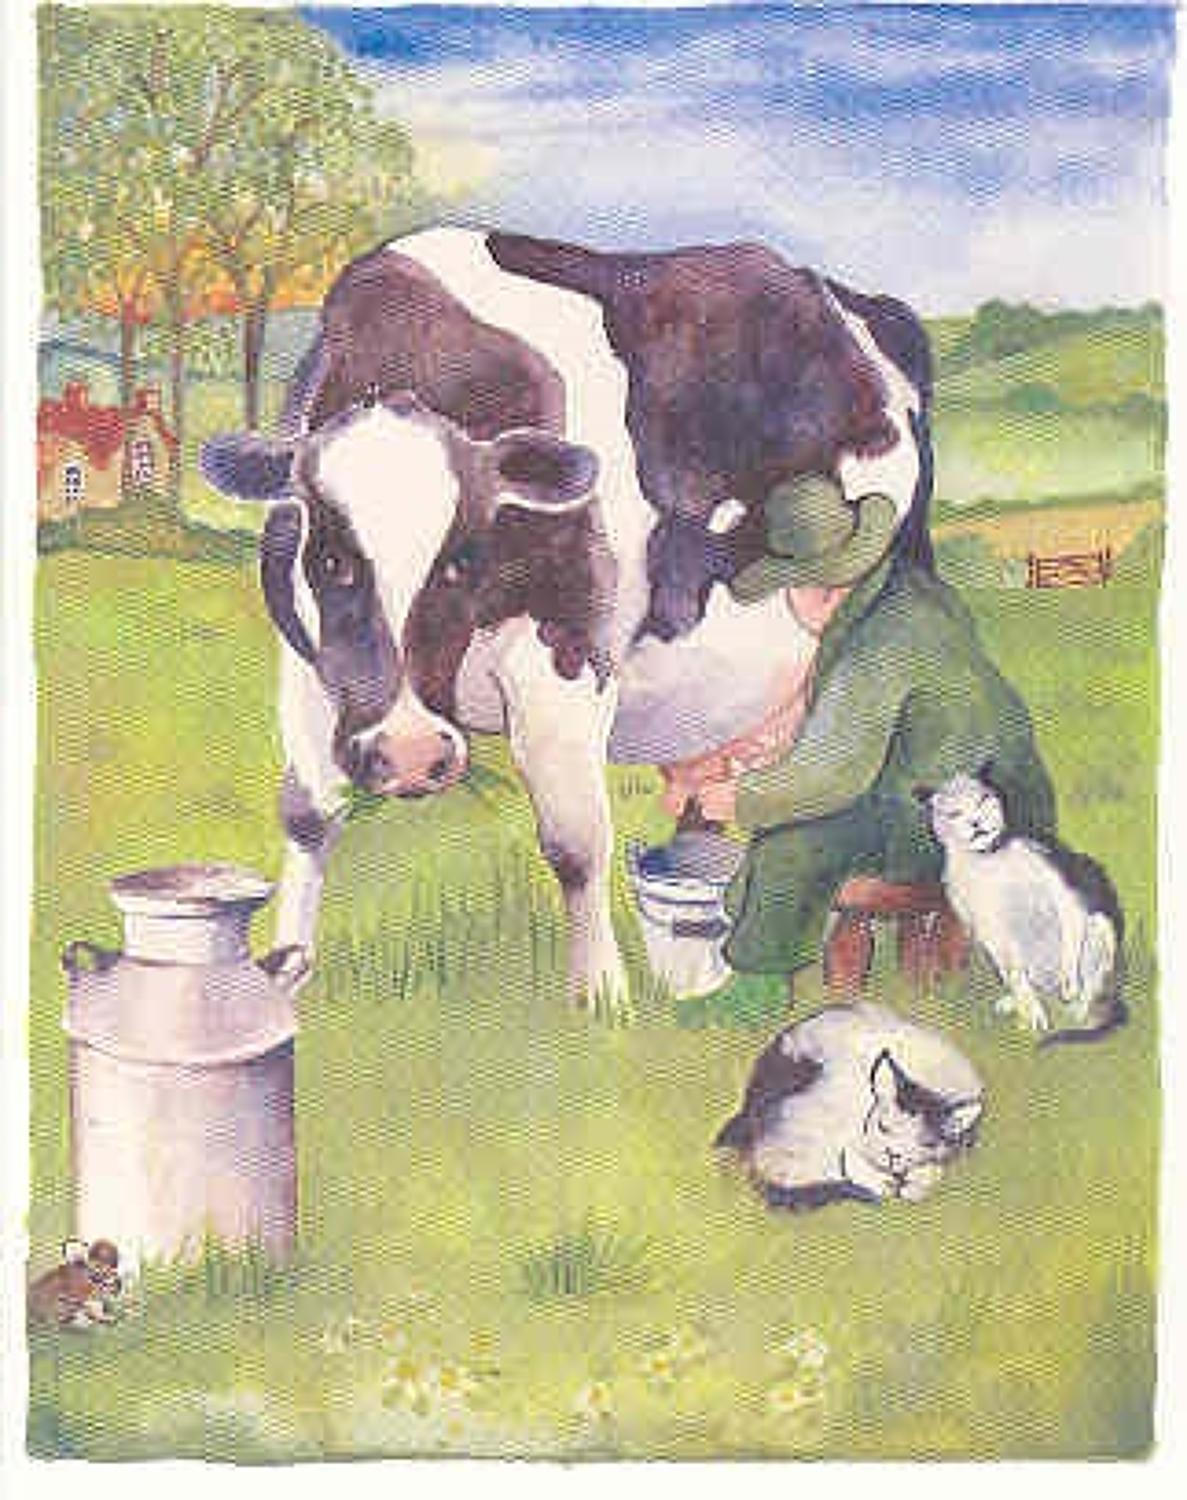 Milking the cow by hand